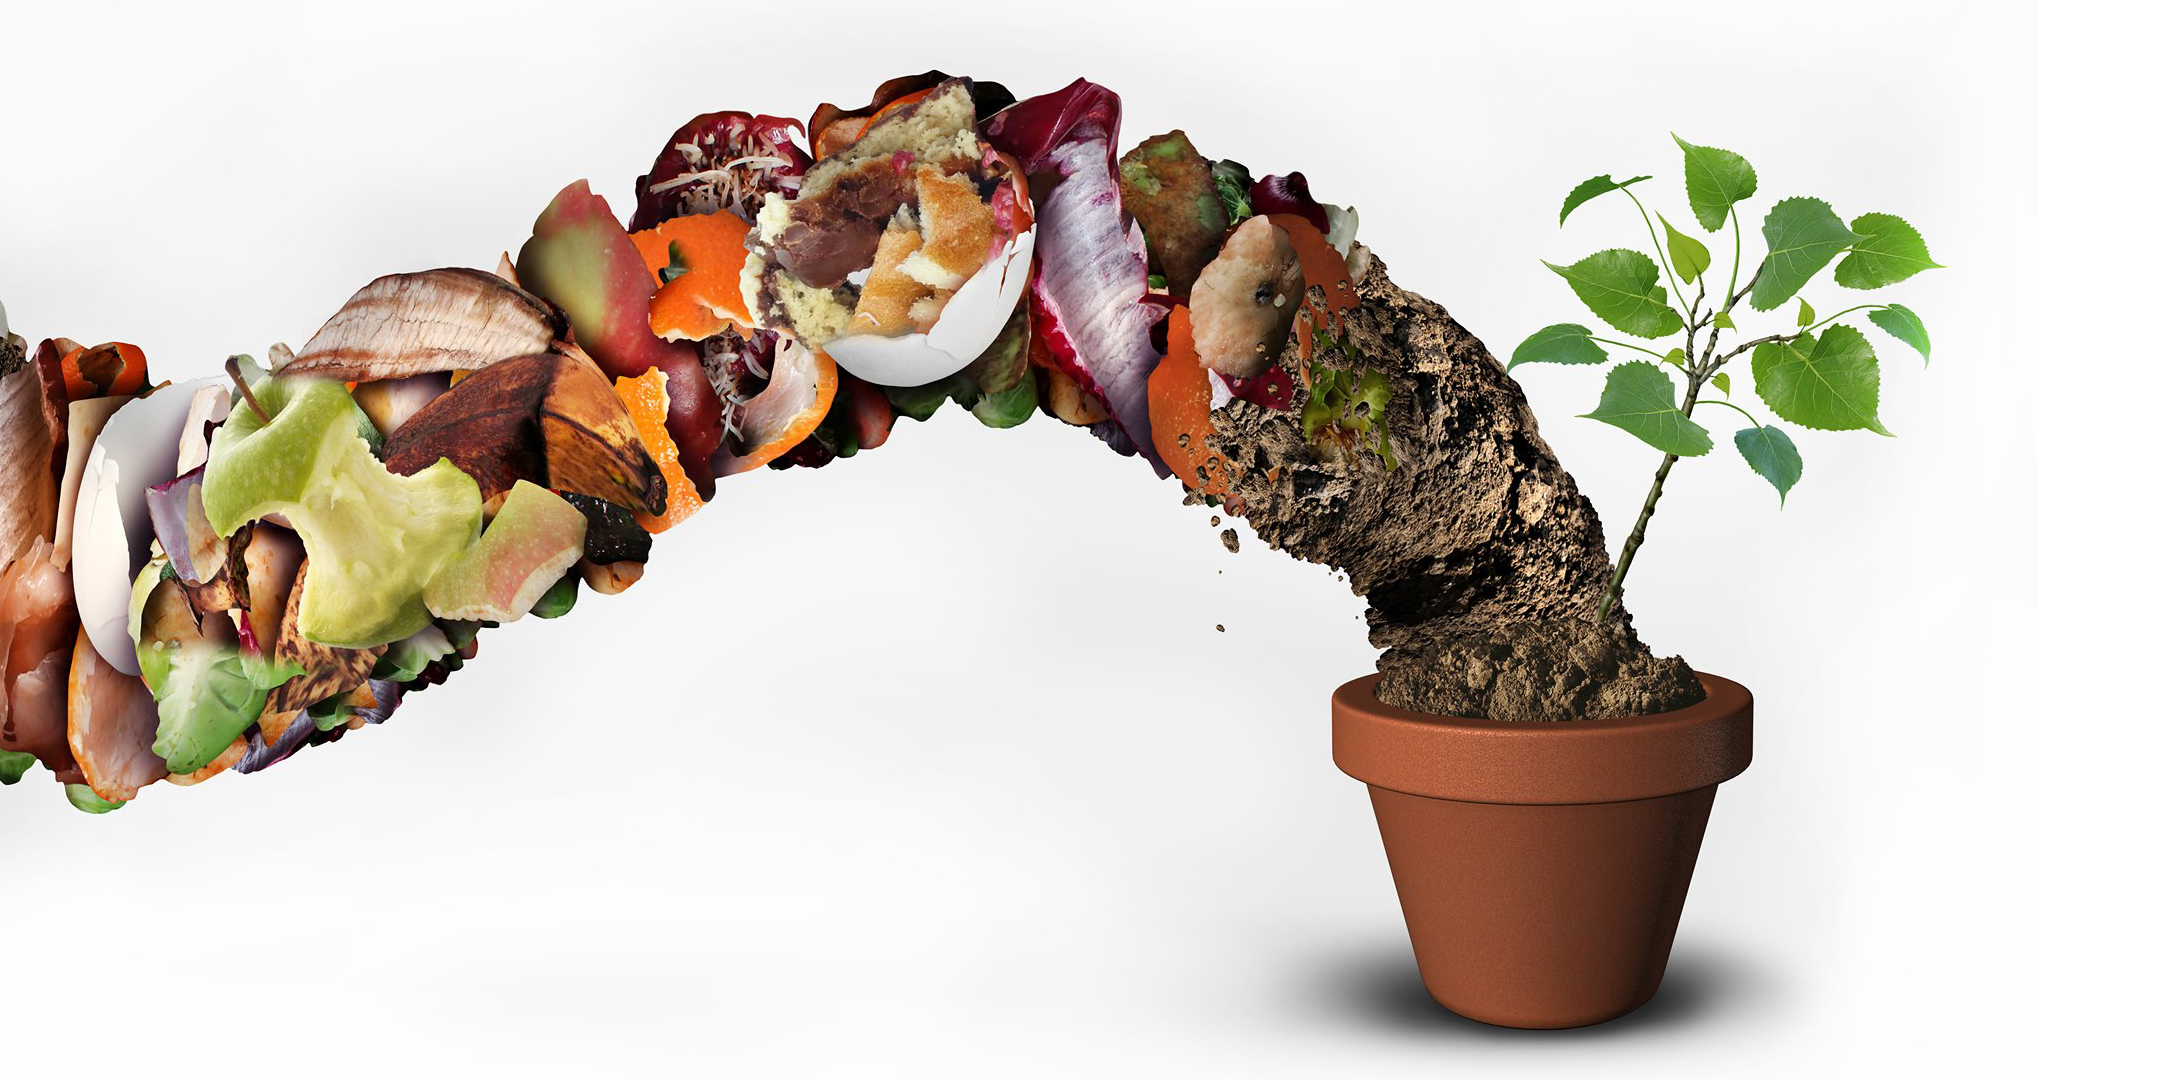 food scraps are transformed into compost